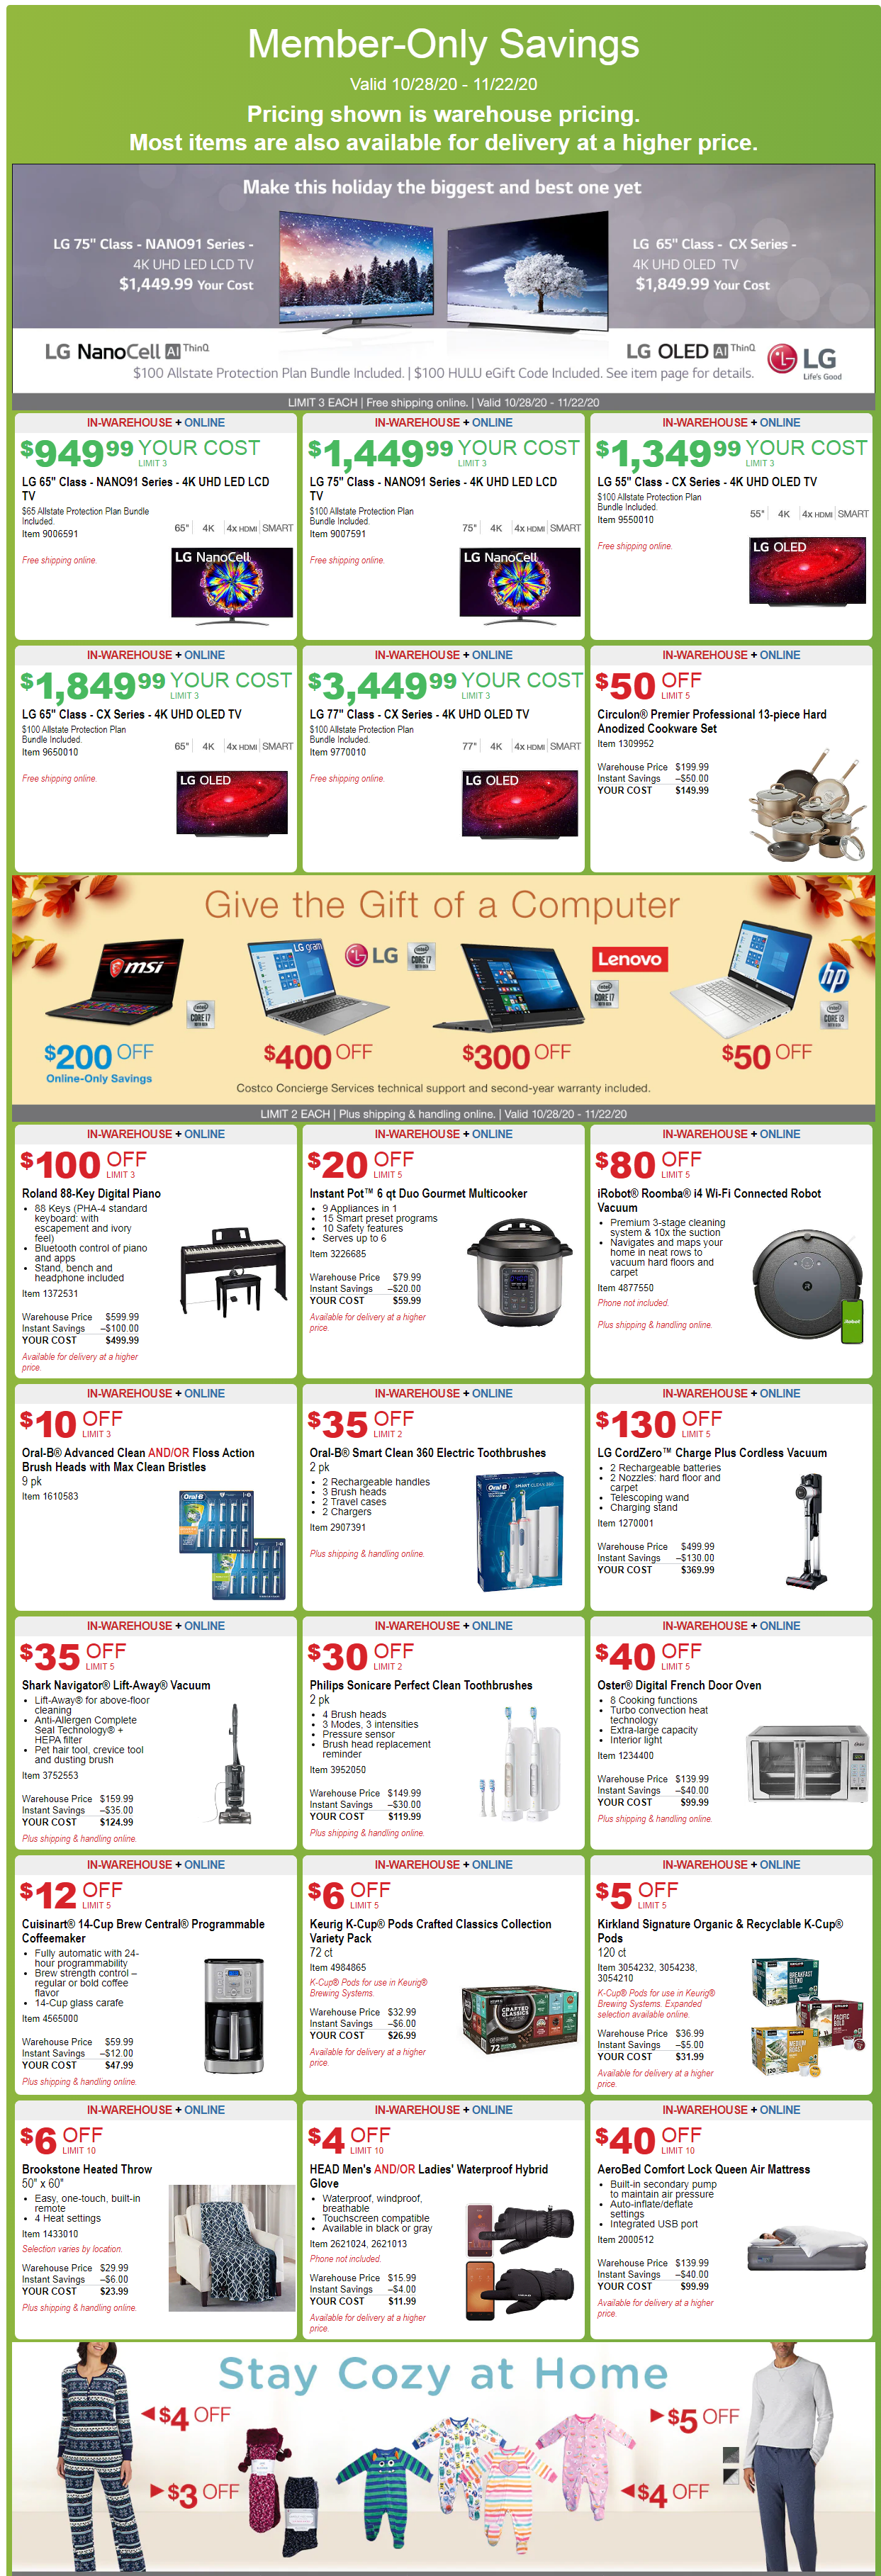 Costco Coupon Offers October 28 - November 22, 2020